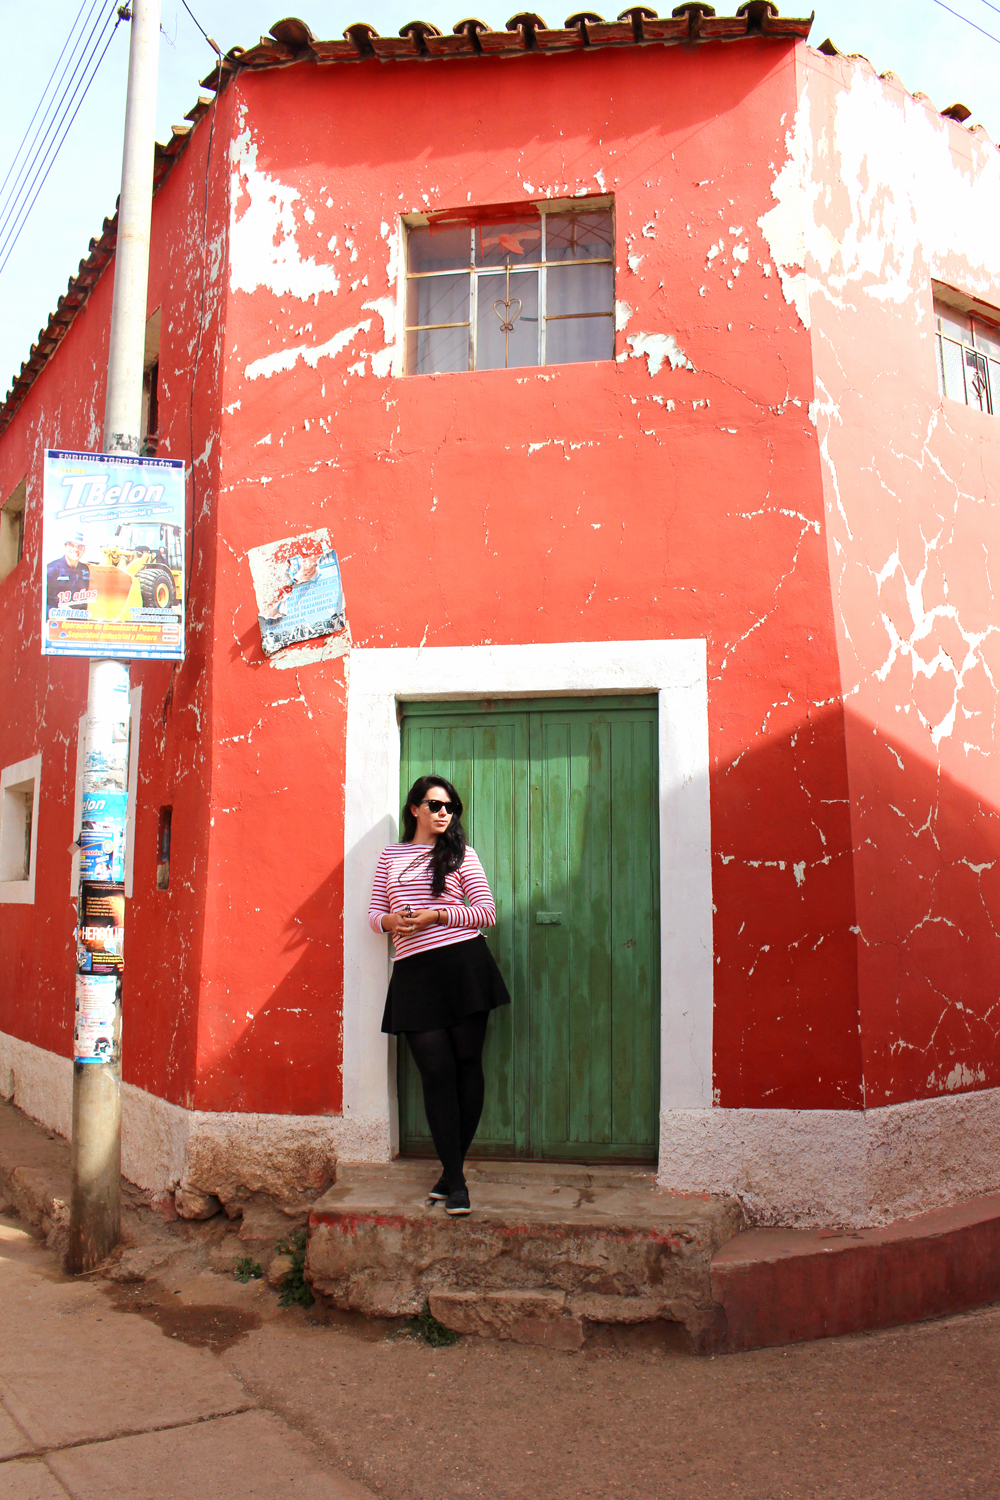 Colourful buildings in Pucara, Peru - travel & culture blog